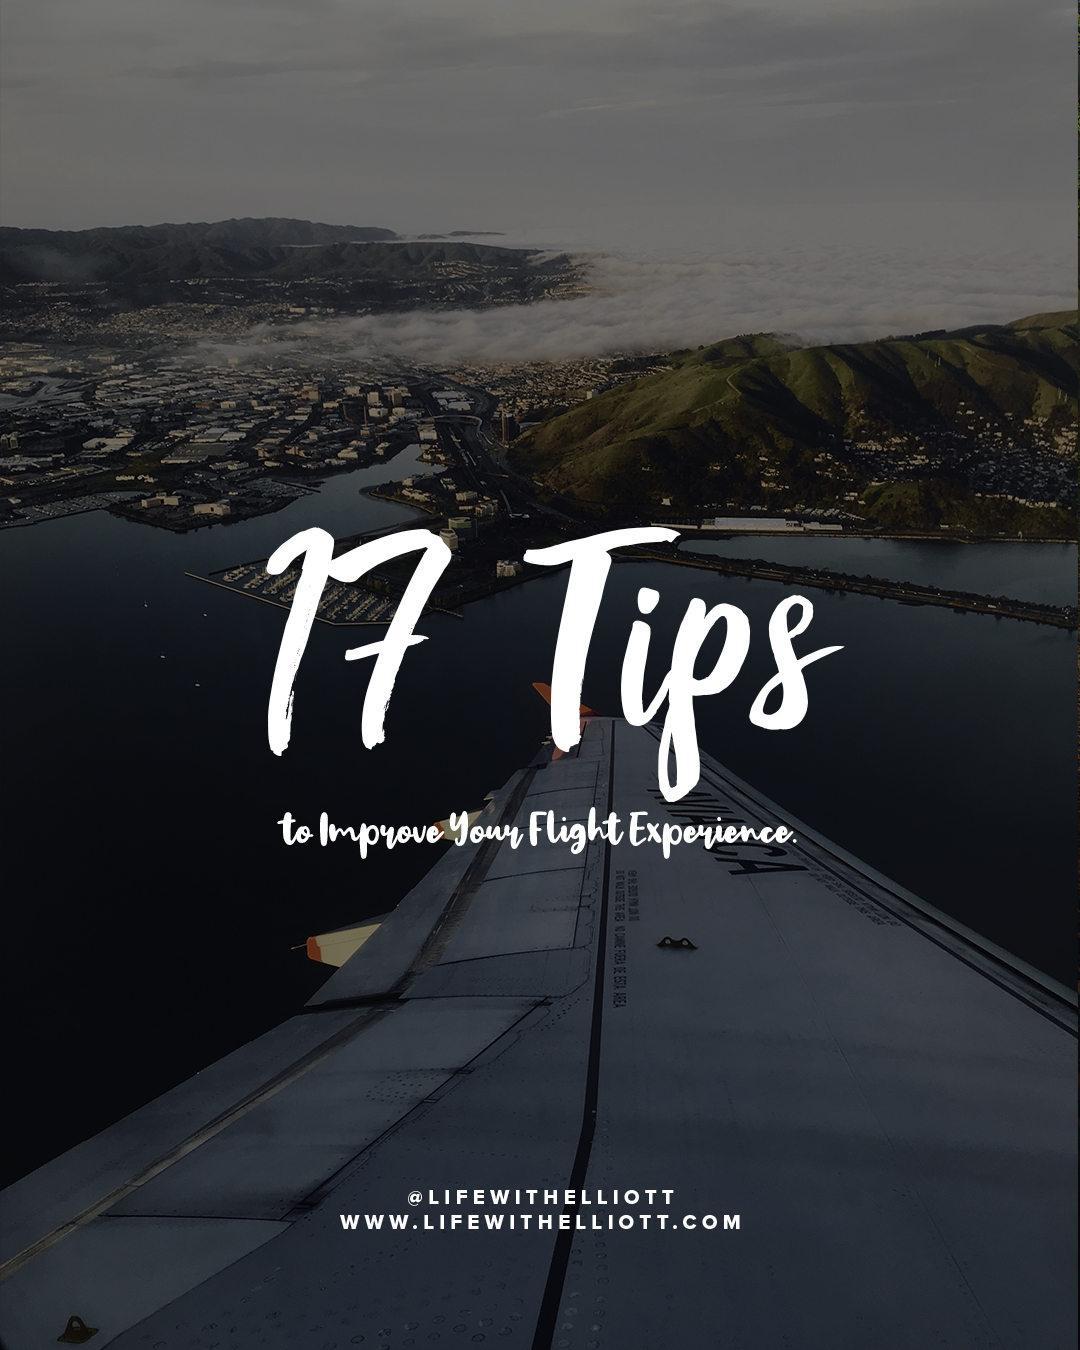 17 Tips to Improve your Flight Experience by LifewithElliott